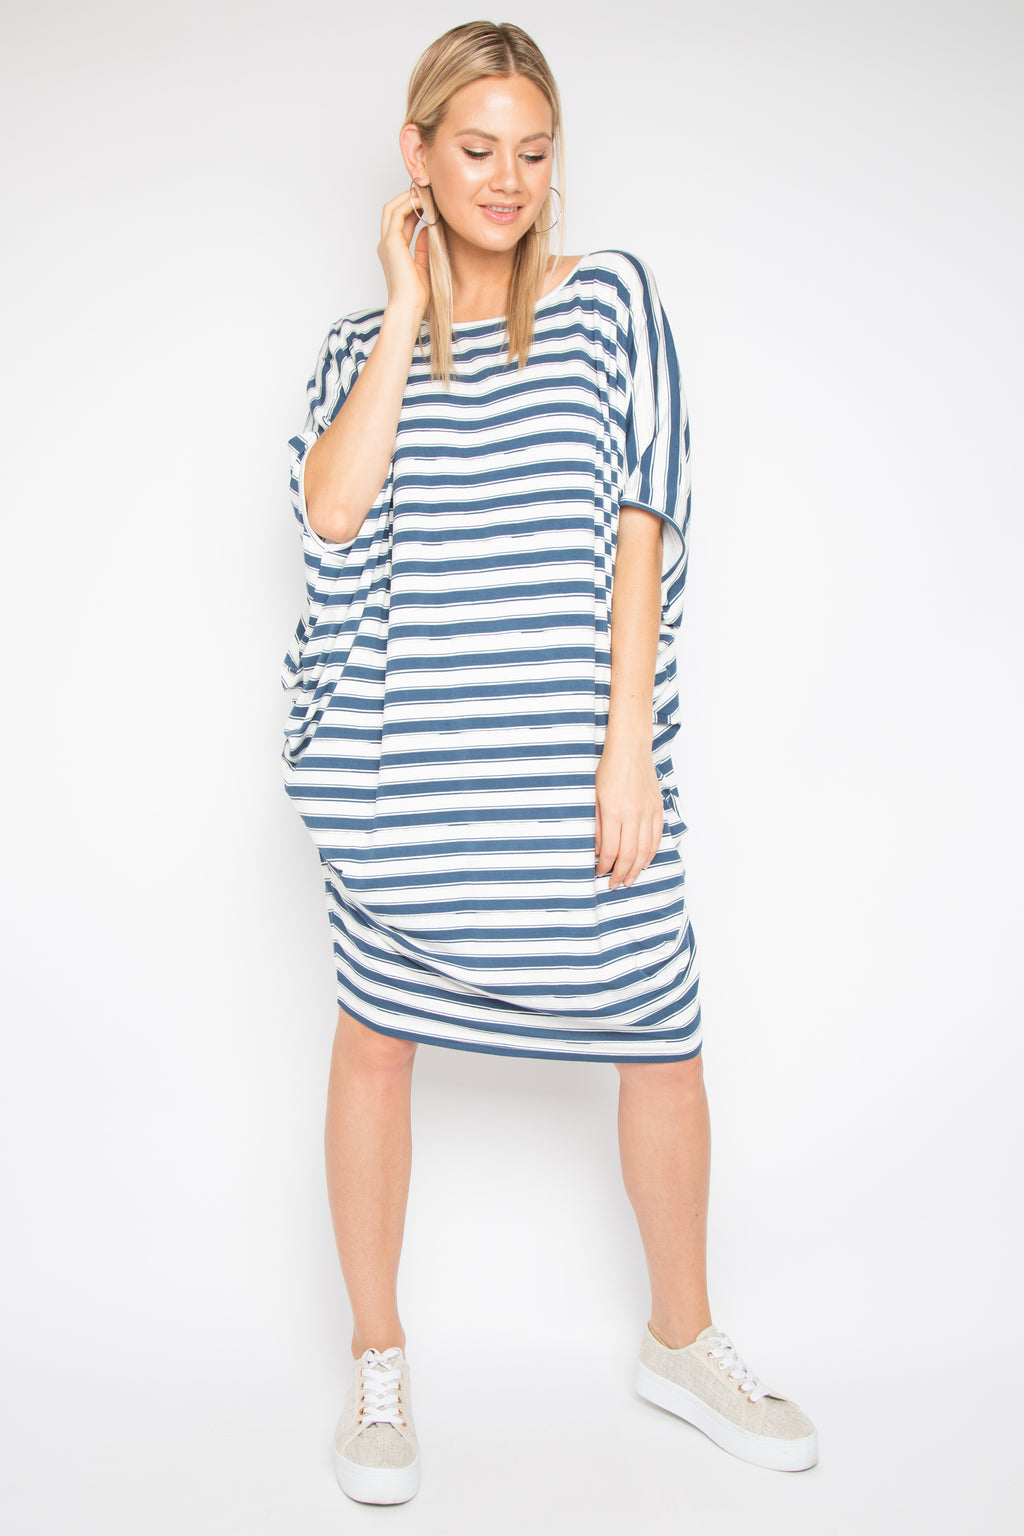 Original Miracle Dress in Silver Navy Stripe